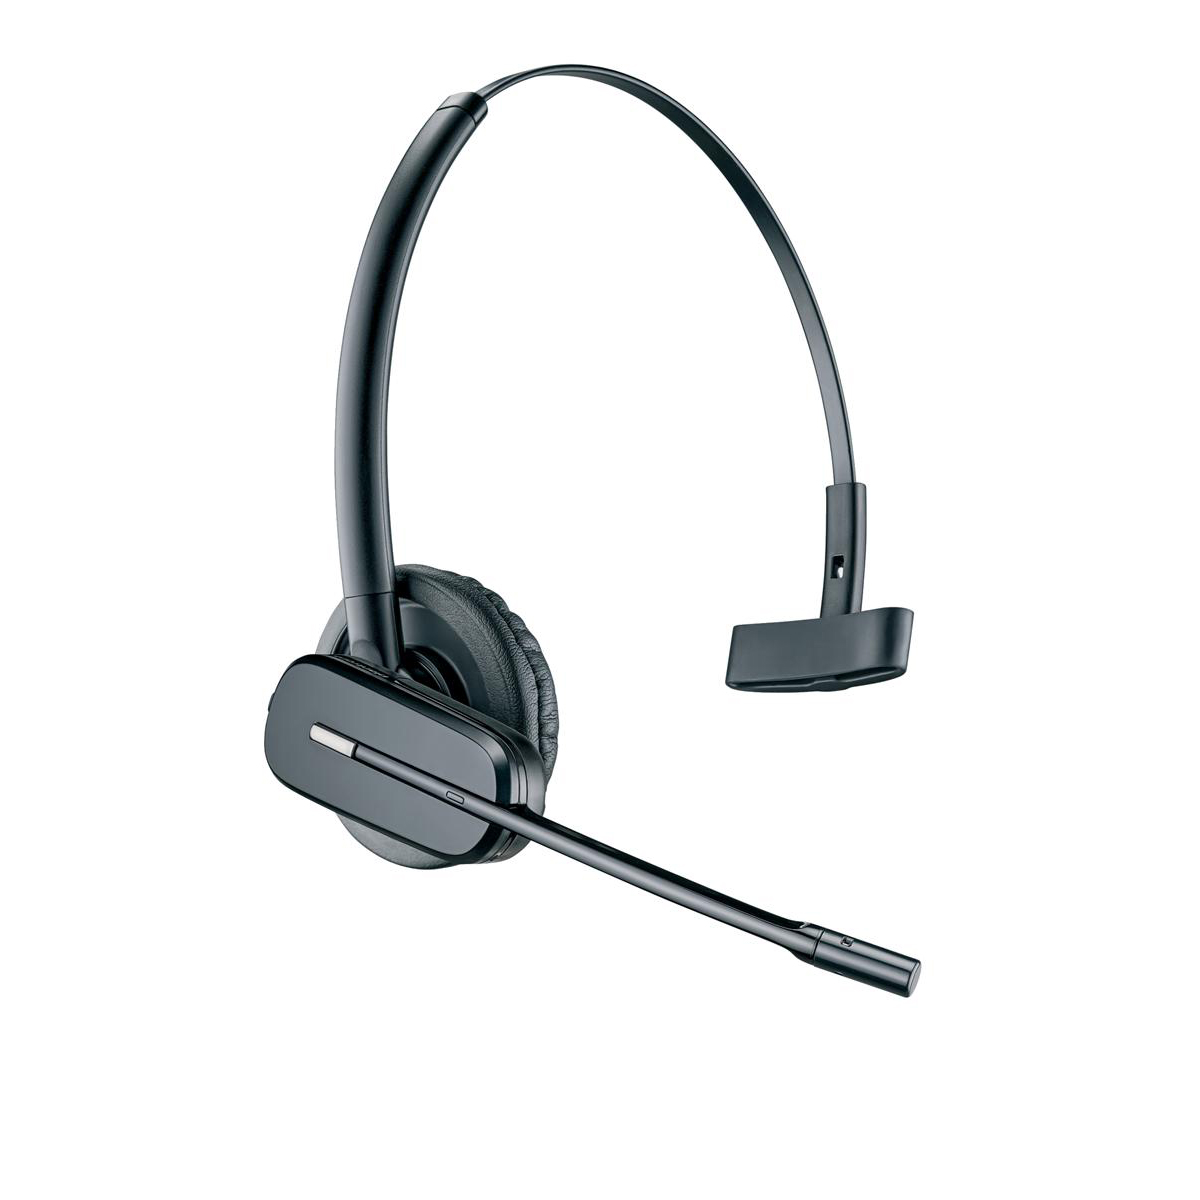 Plantronics CS540 Headset or Earpiece Monaural Convertible DECT Cordless Lightweight Ref 84693-02